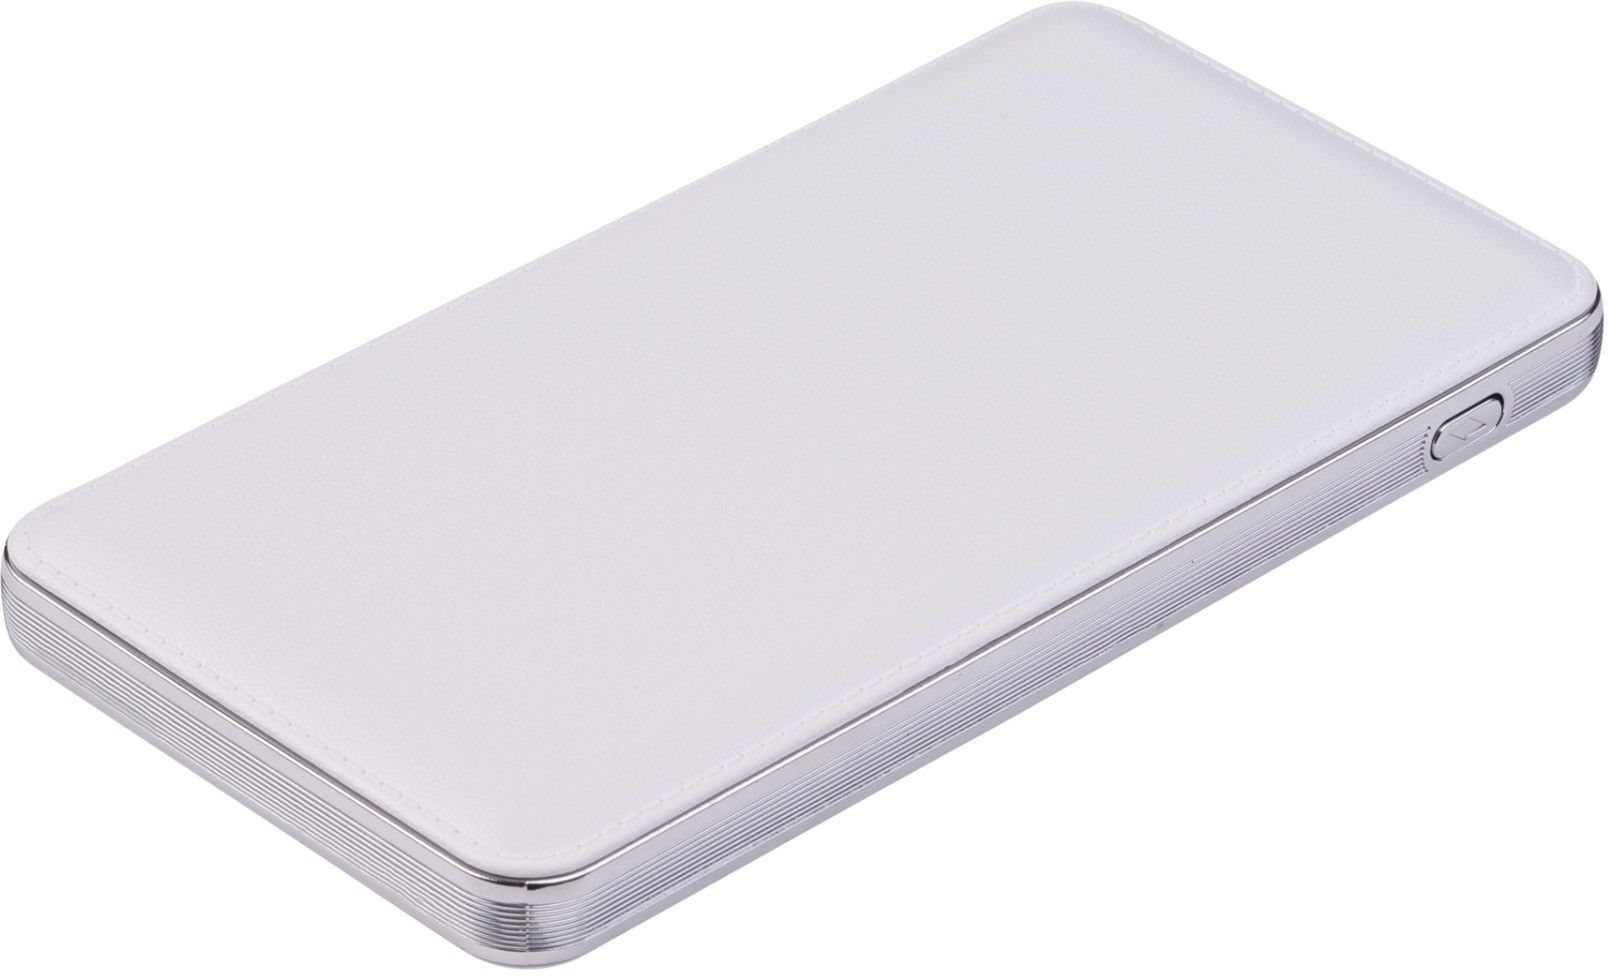 GreyLime Power PL04 10,000mAh